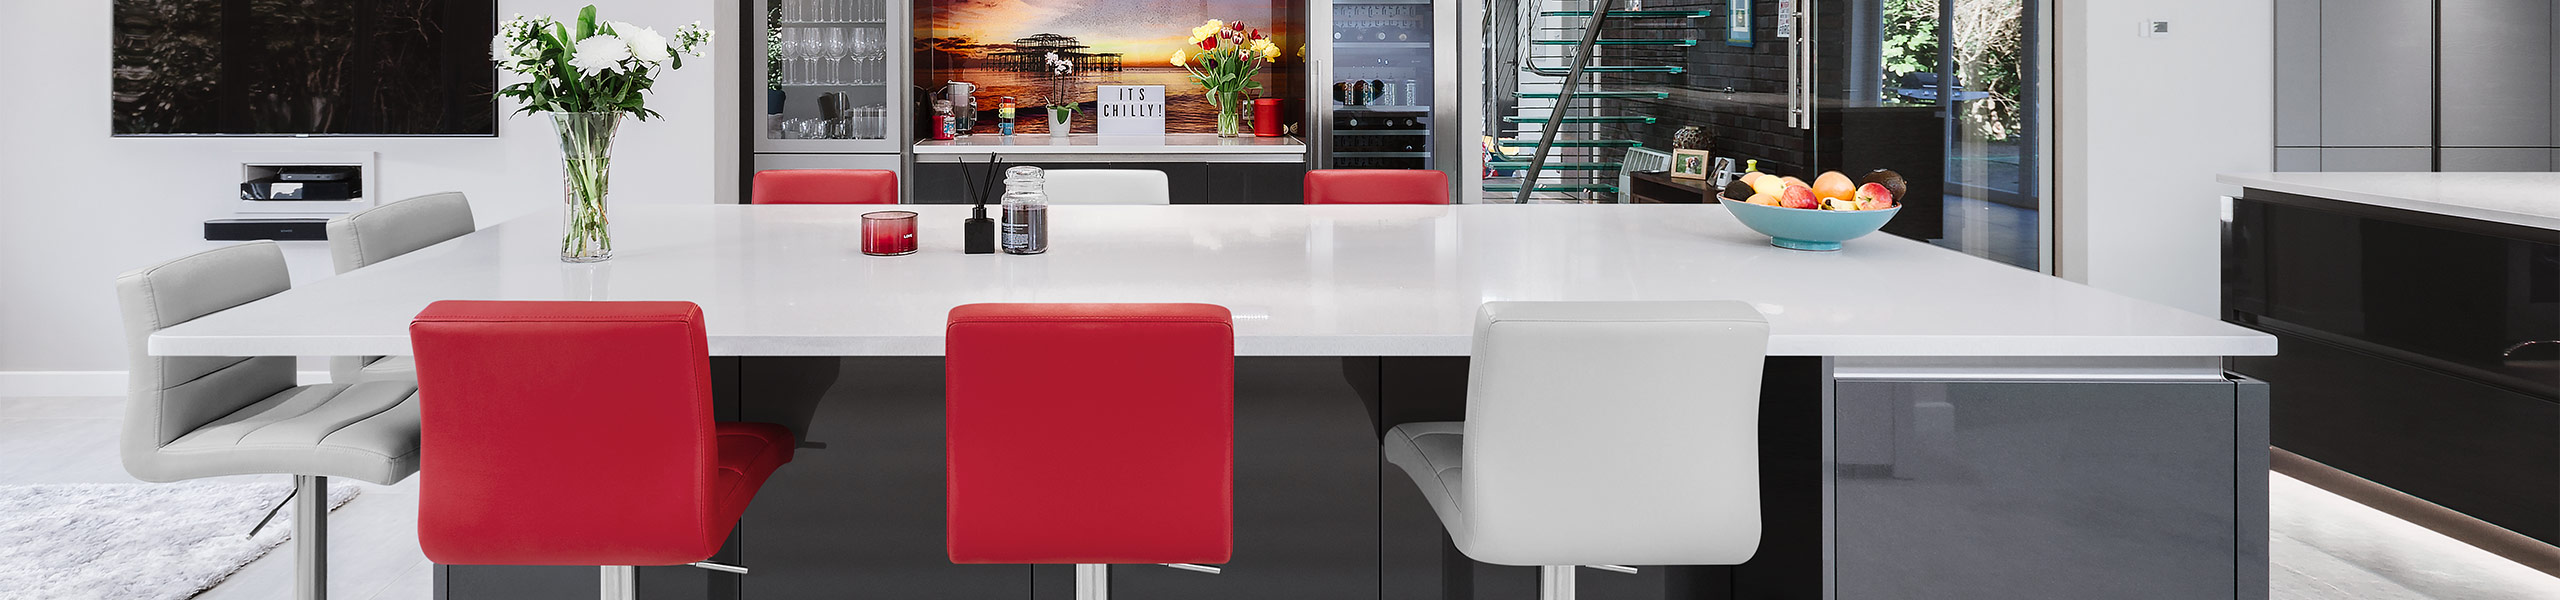 Lush Brushed Steel Bar Stool Red Video Banner